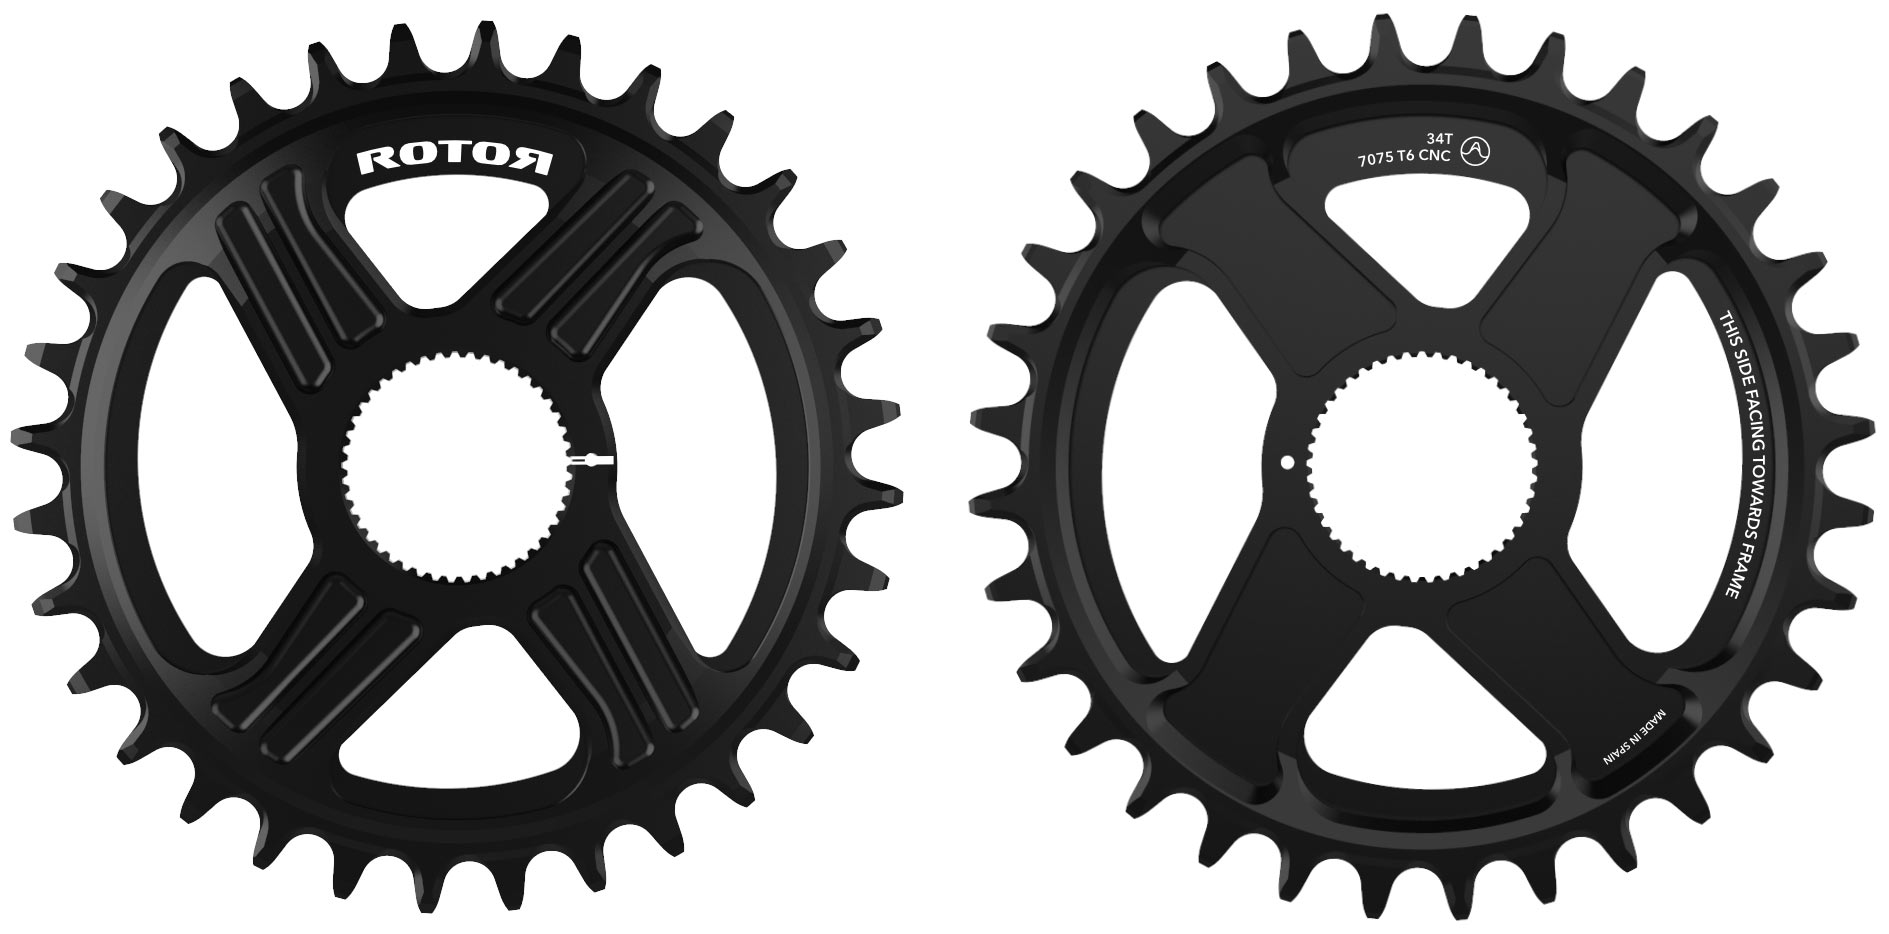 Rotor round mountain bike chainrings with universal tooth profile to work with sram and shimano 12-speed chains